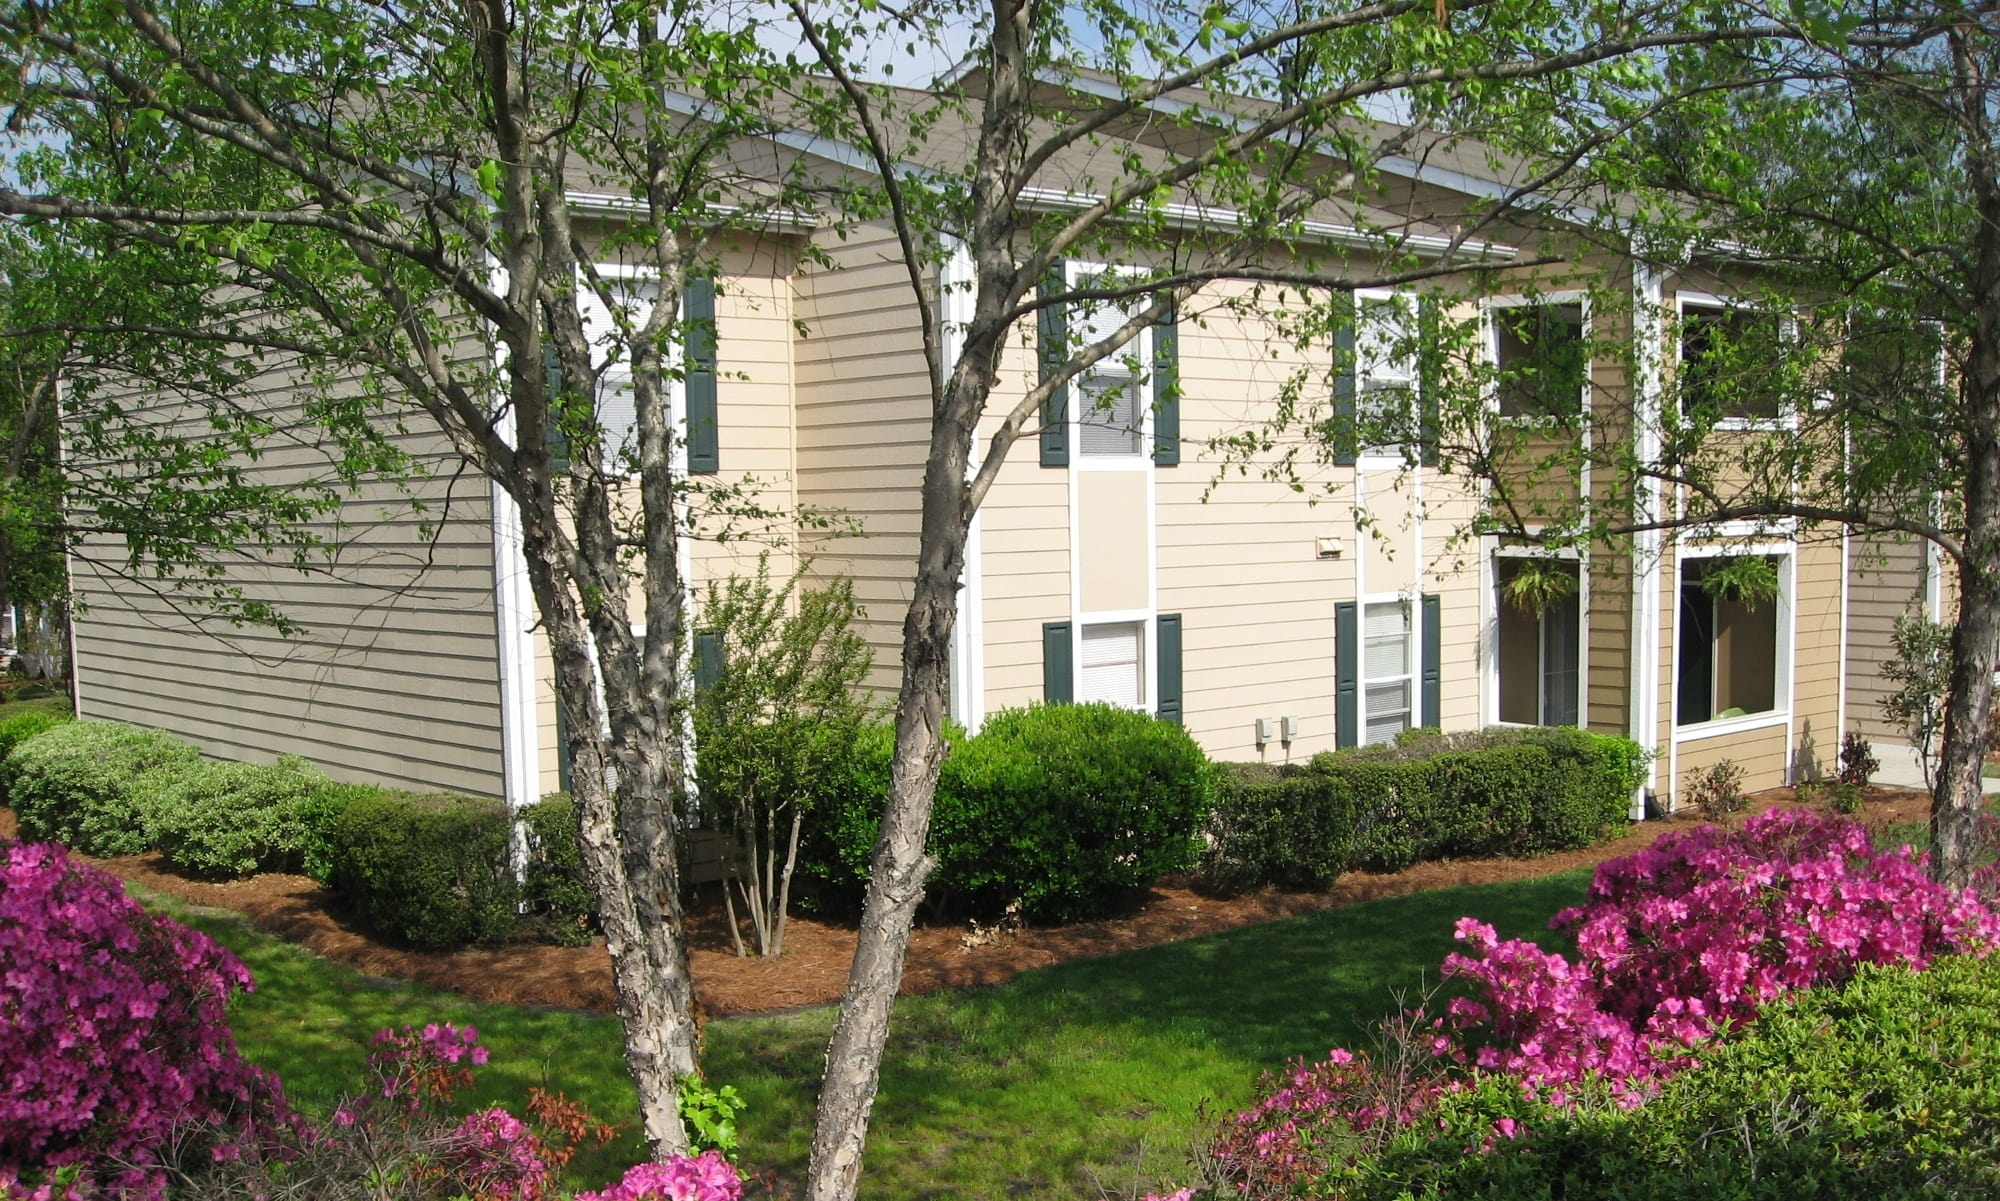 The Grove at Spring Valley has great apartments at great prices